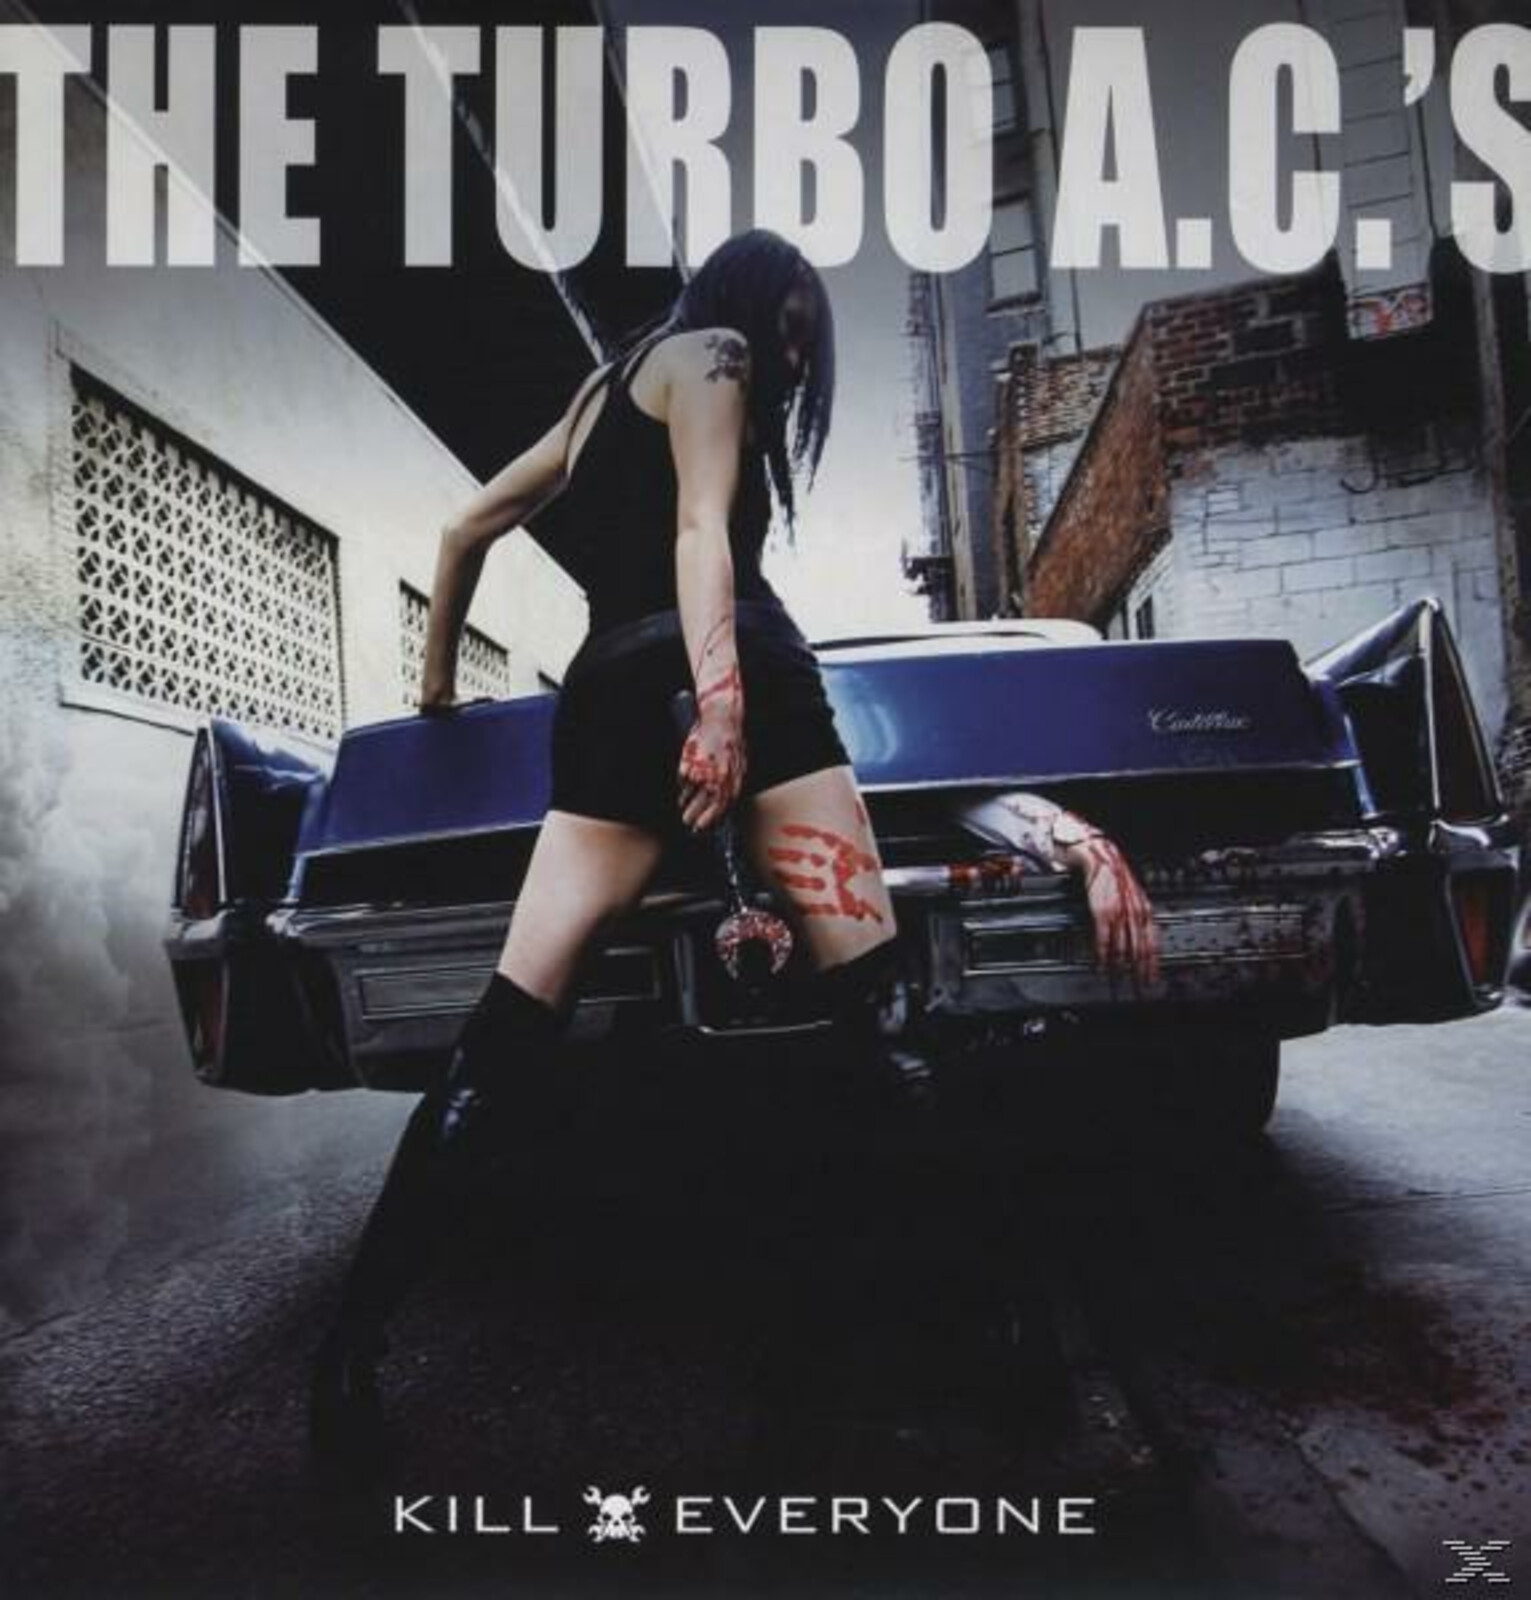 The Turbo A.c.'s - Kill Everyone [Vinyl]